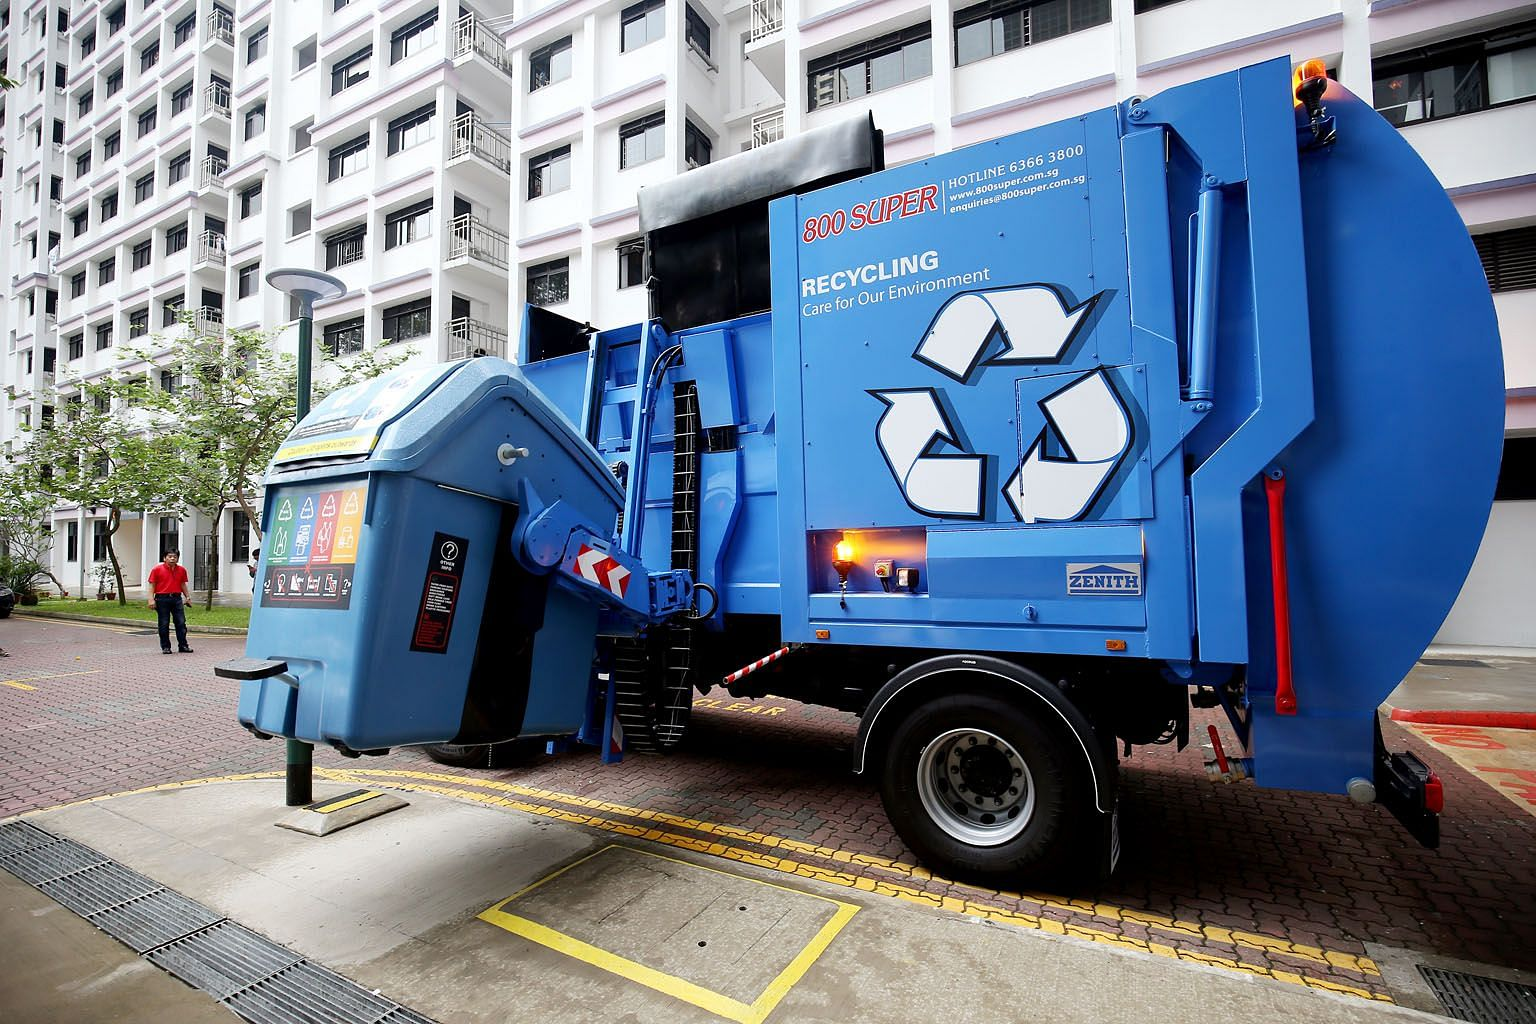 Rubbish collection firm 800 Super is 77.6 per cent controlled by the Lee family. The Lees are offering 90 cents in cash for each 800 Super share, a deal that values the company at $161 million.